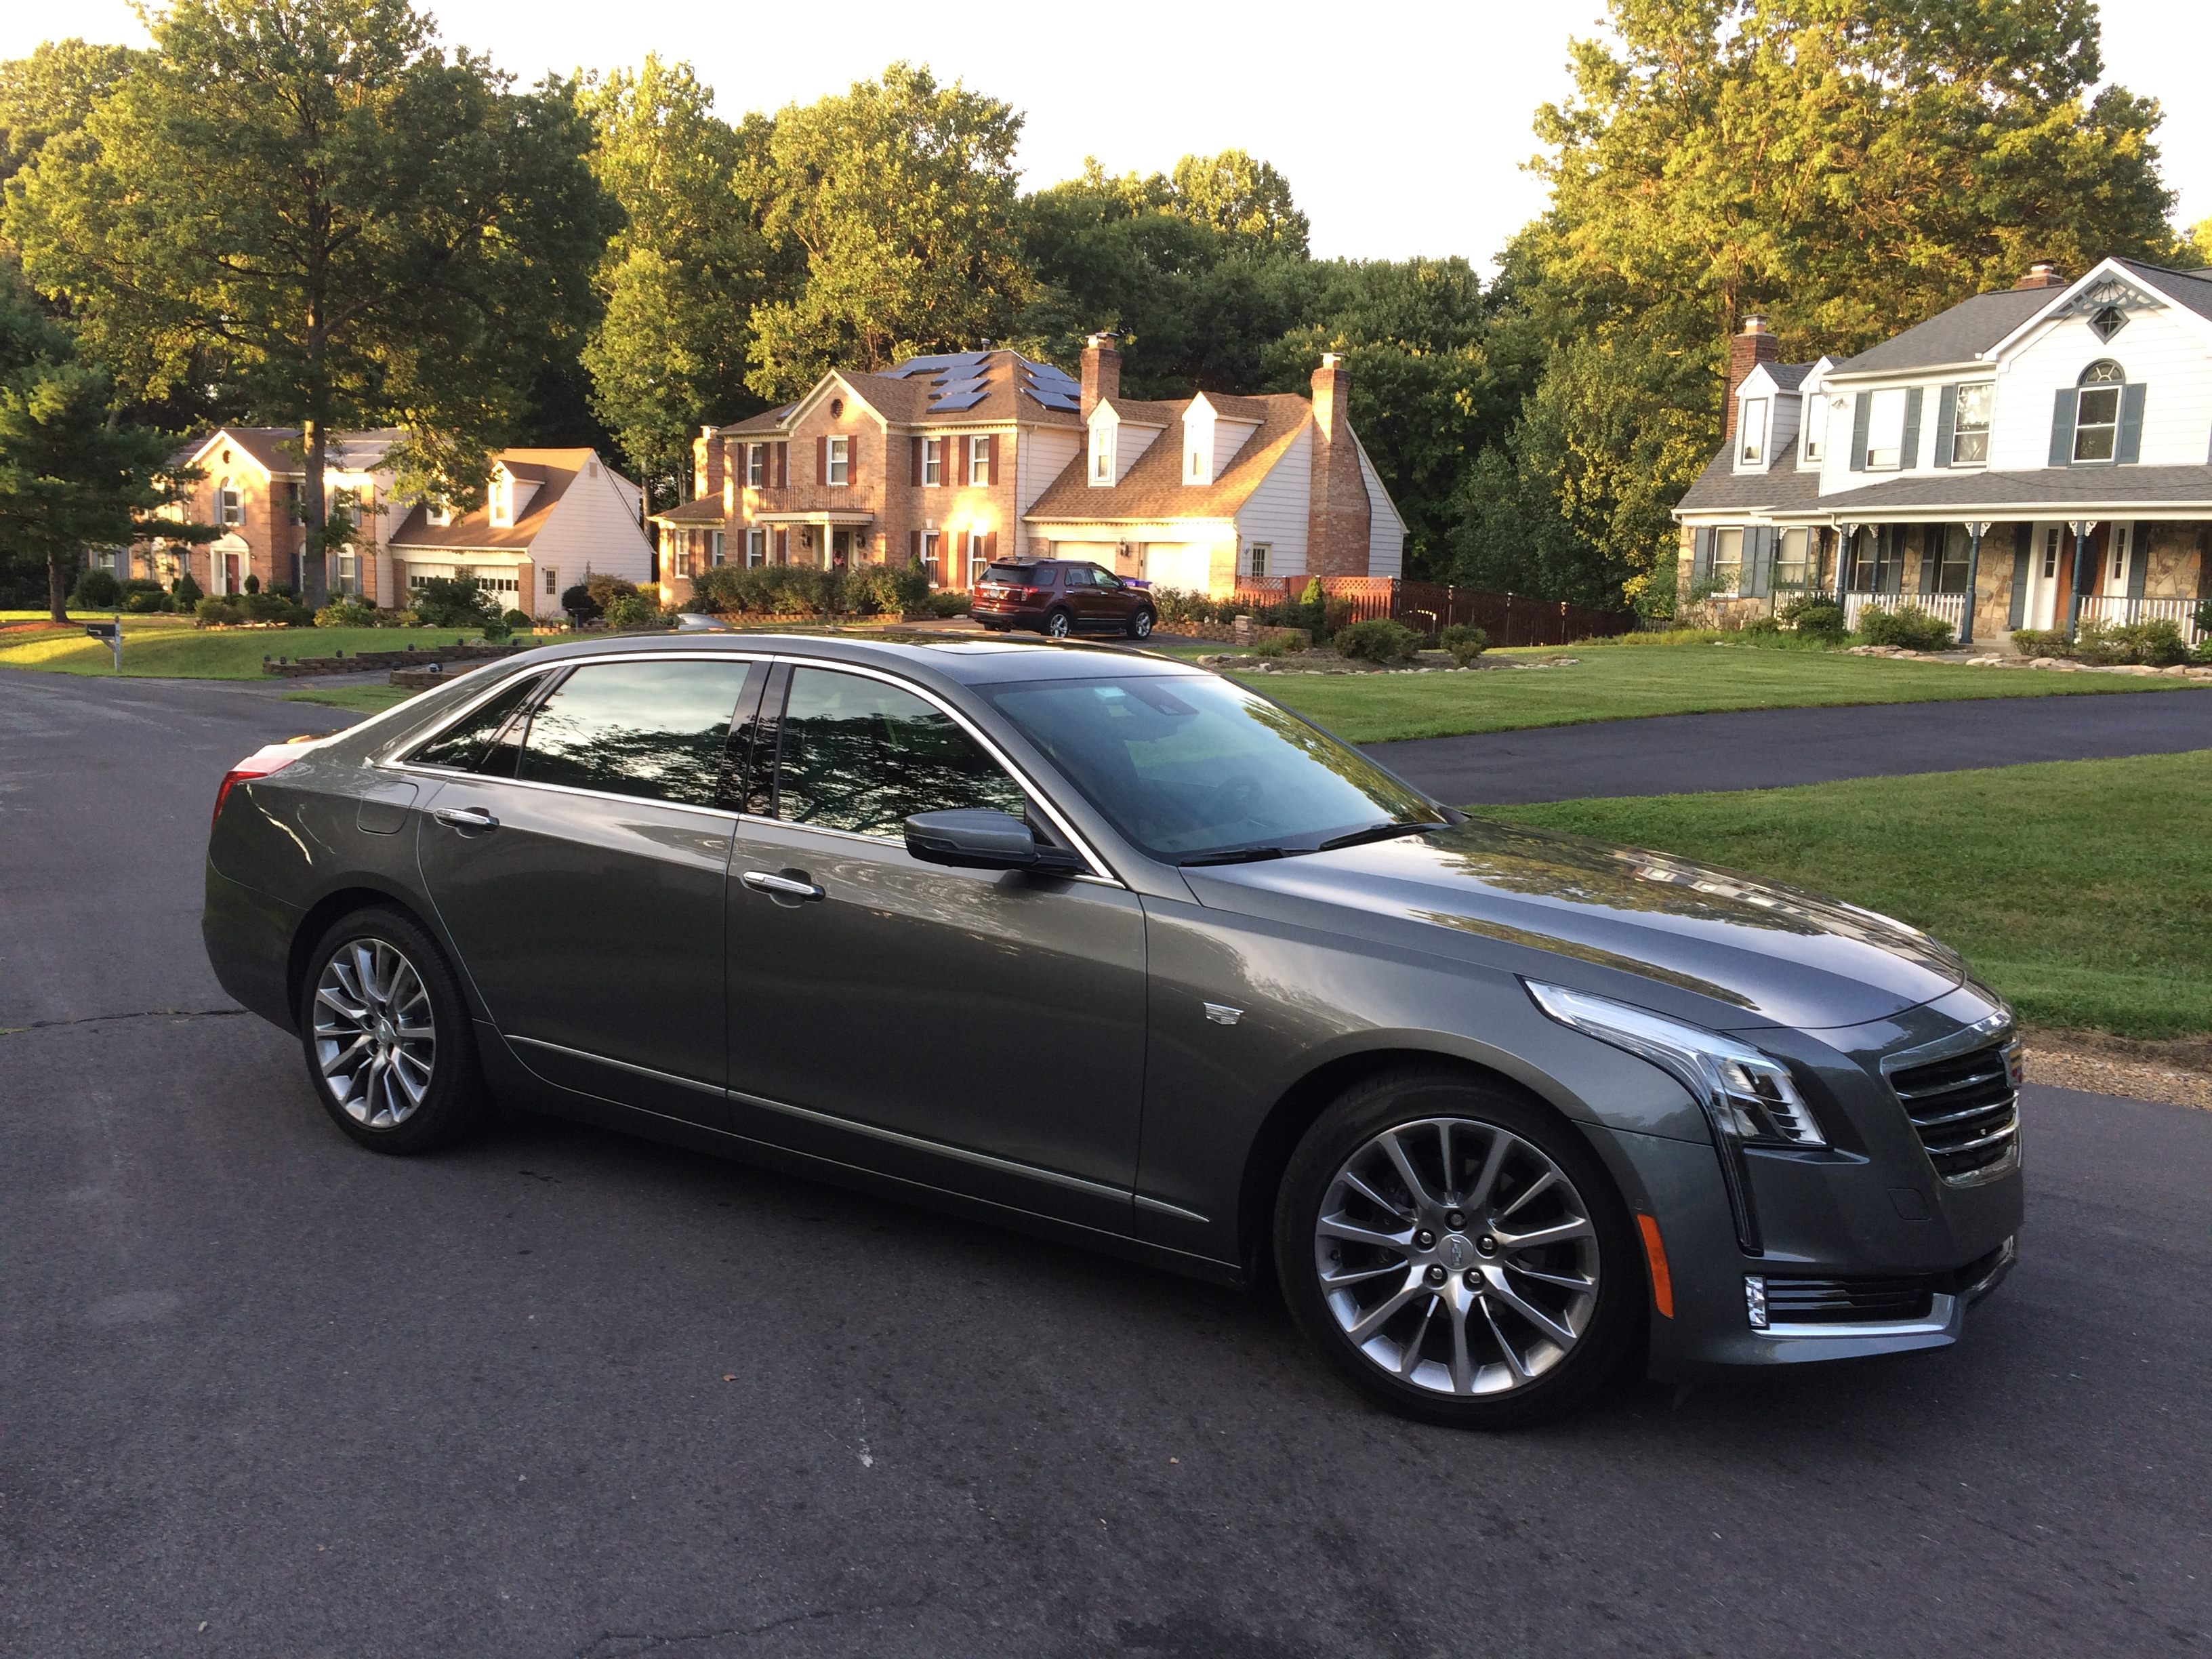 All-new Cadillac CT6 helps move the brand | WTOP